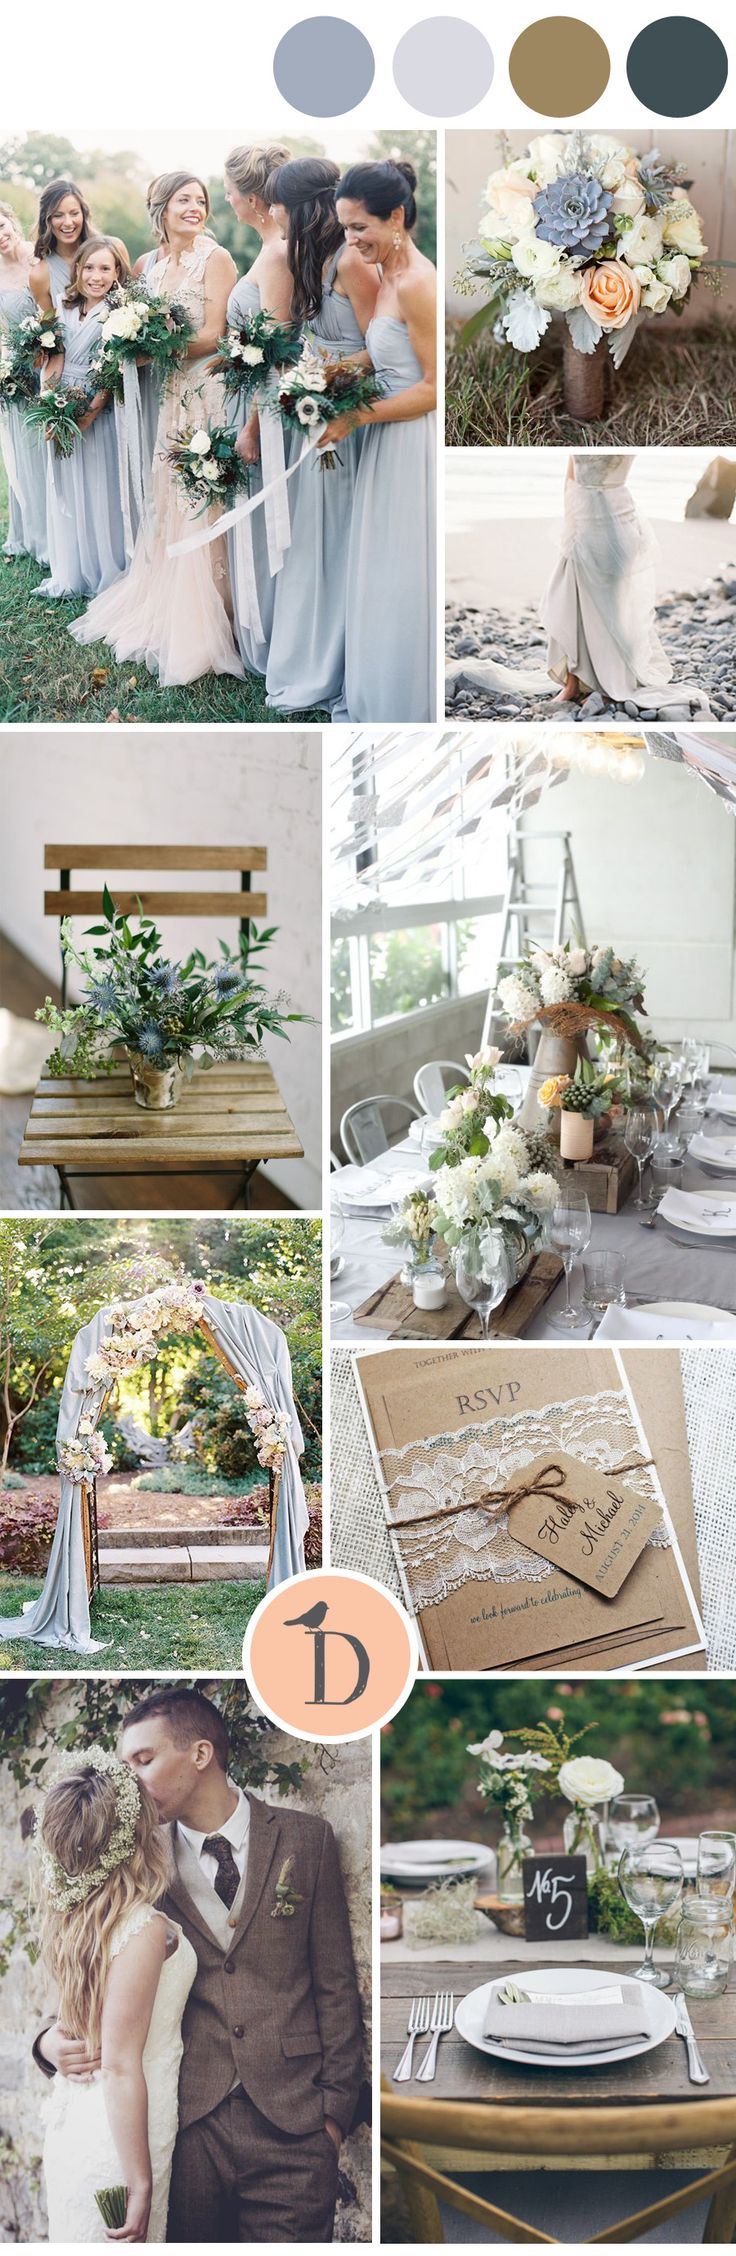 Slate grey and chocolate brown make a stunning combination that's particularly great as a winter wedding color scheme. Combine with lots of natural textures like wood or stone, and you create a look that is both timeless and modern. Ivory or blush make lovely highlight colors with this scheme, and can add femininity